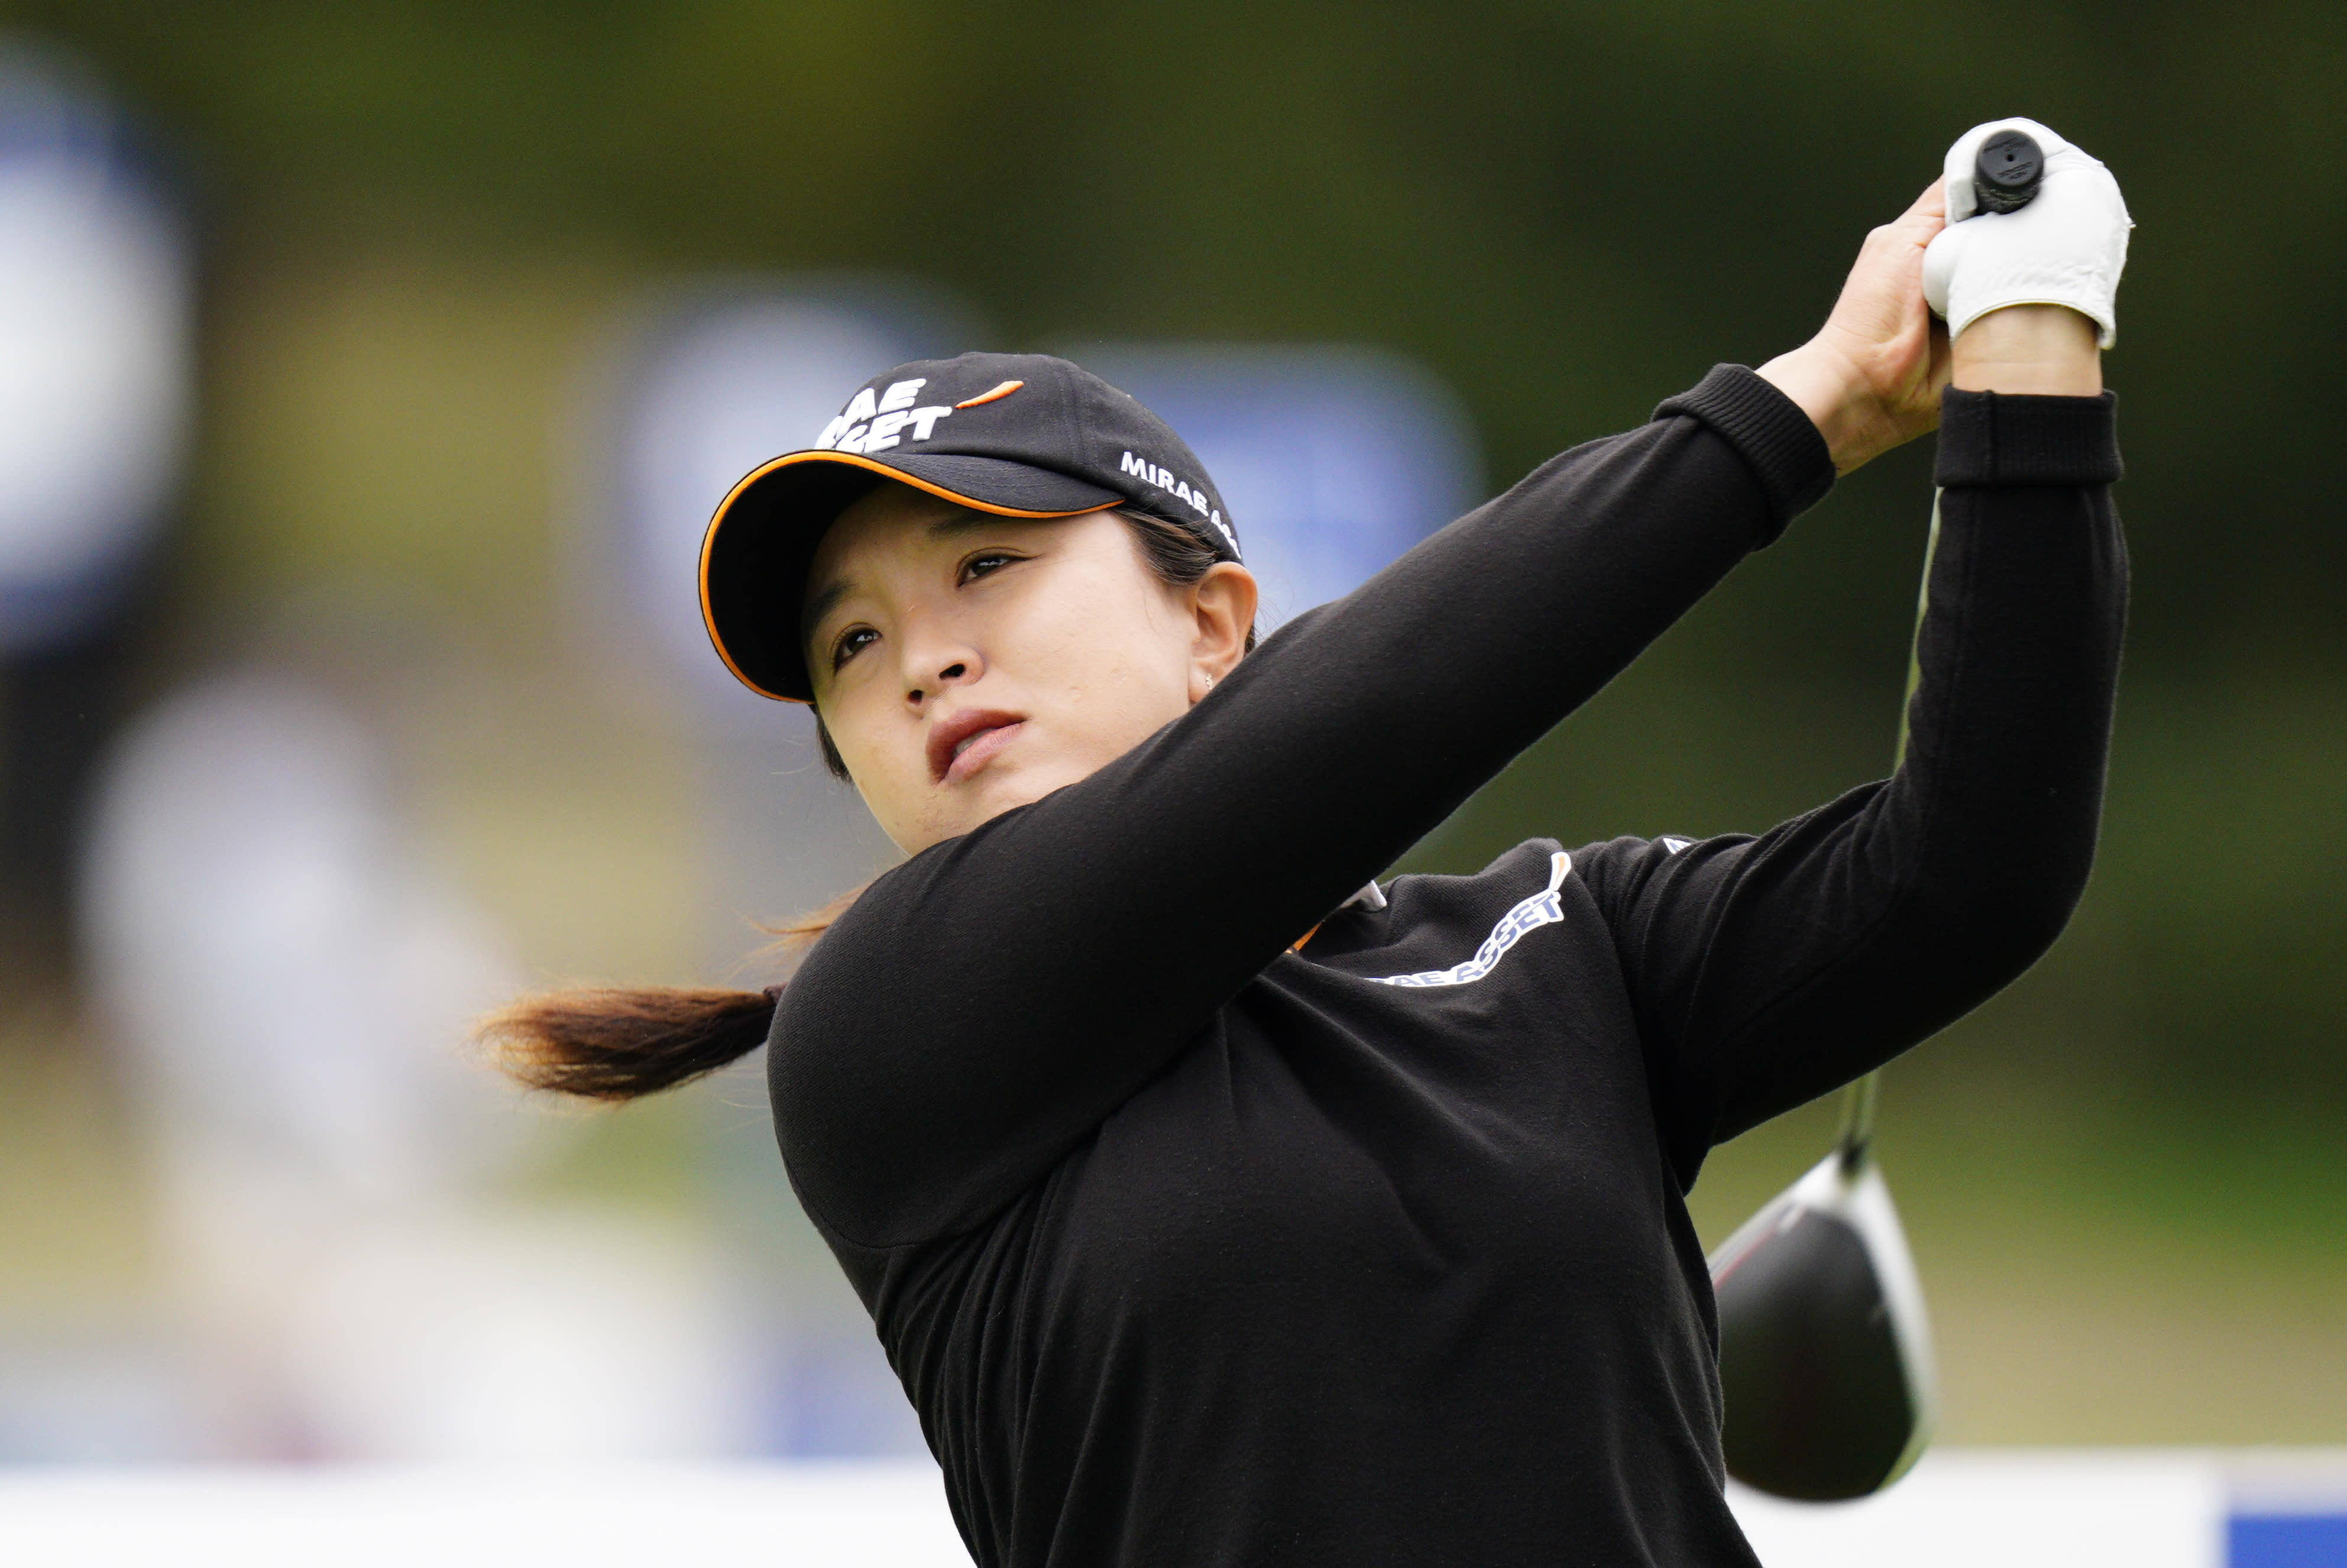 Sei Young Kim, of South Korea, watches her tee shot on the 12th hole during the final round at the KPMG Women's PGA Championship golf tournament at the Aronimink Golf Club, Sunday, Oct. 11, 2020, in Newtown Square, Pa. (AP Photo/Chris Szagola)